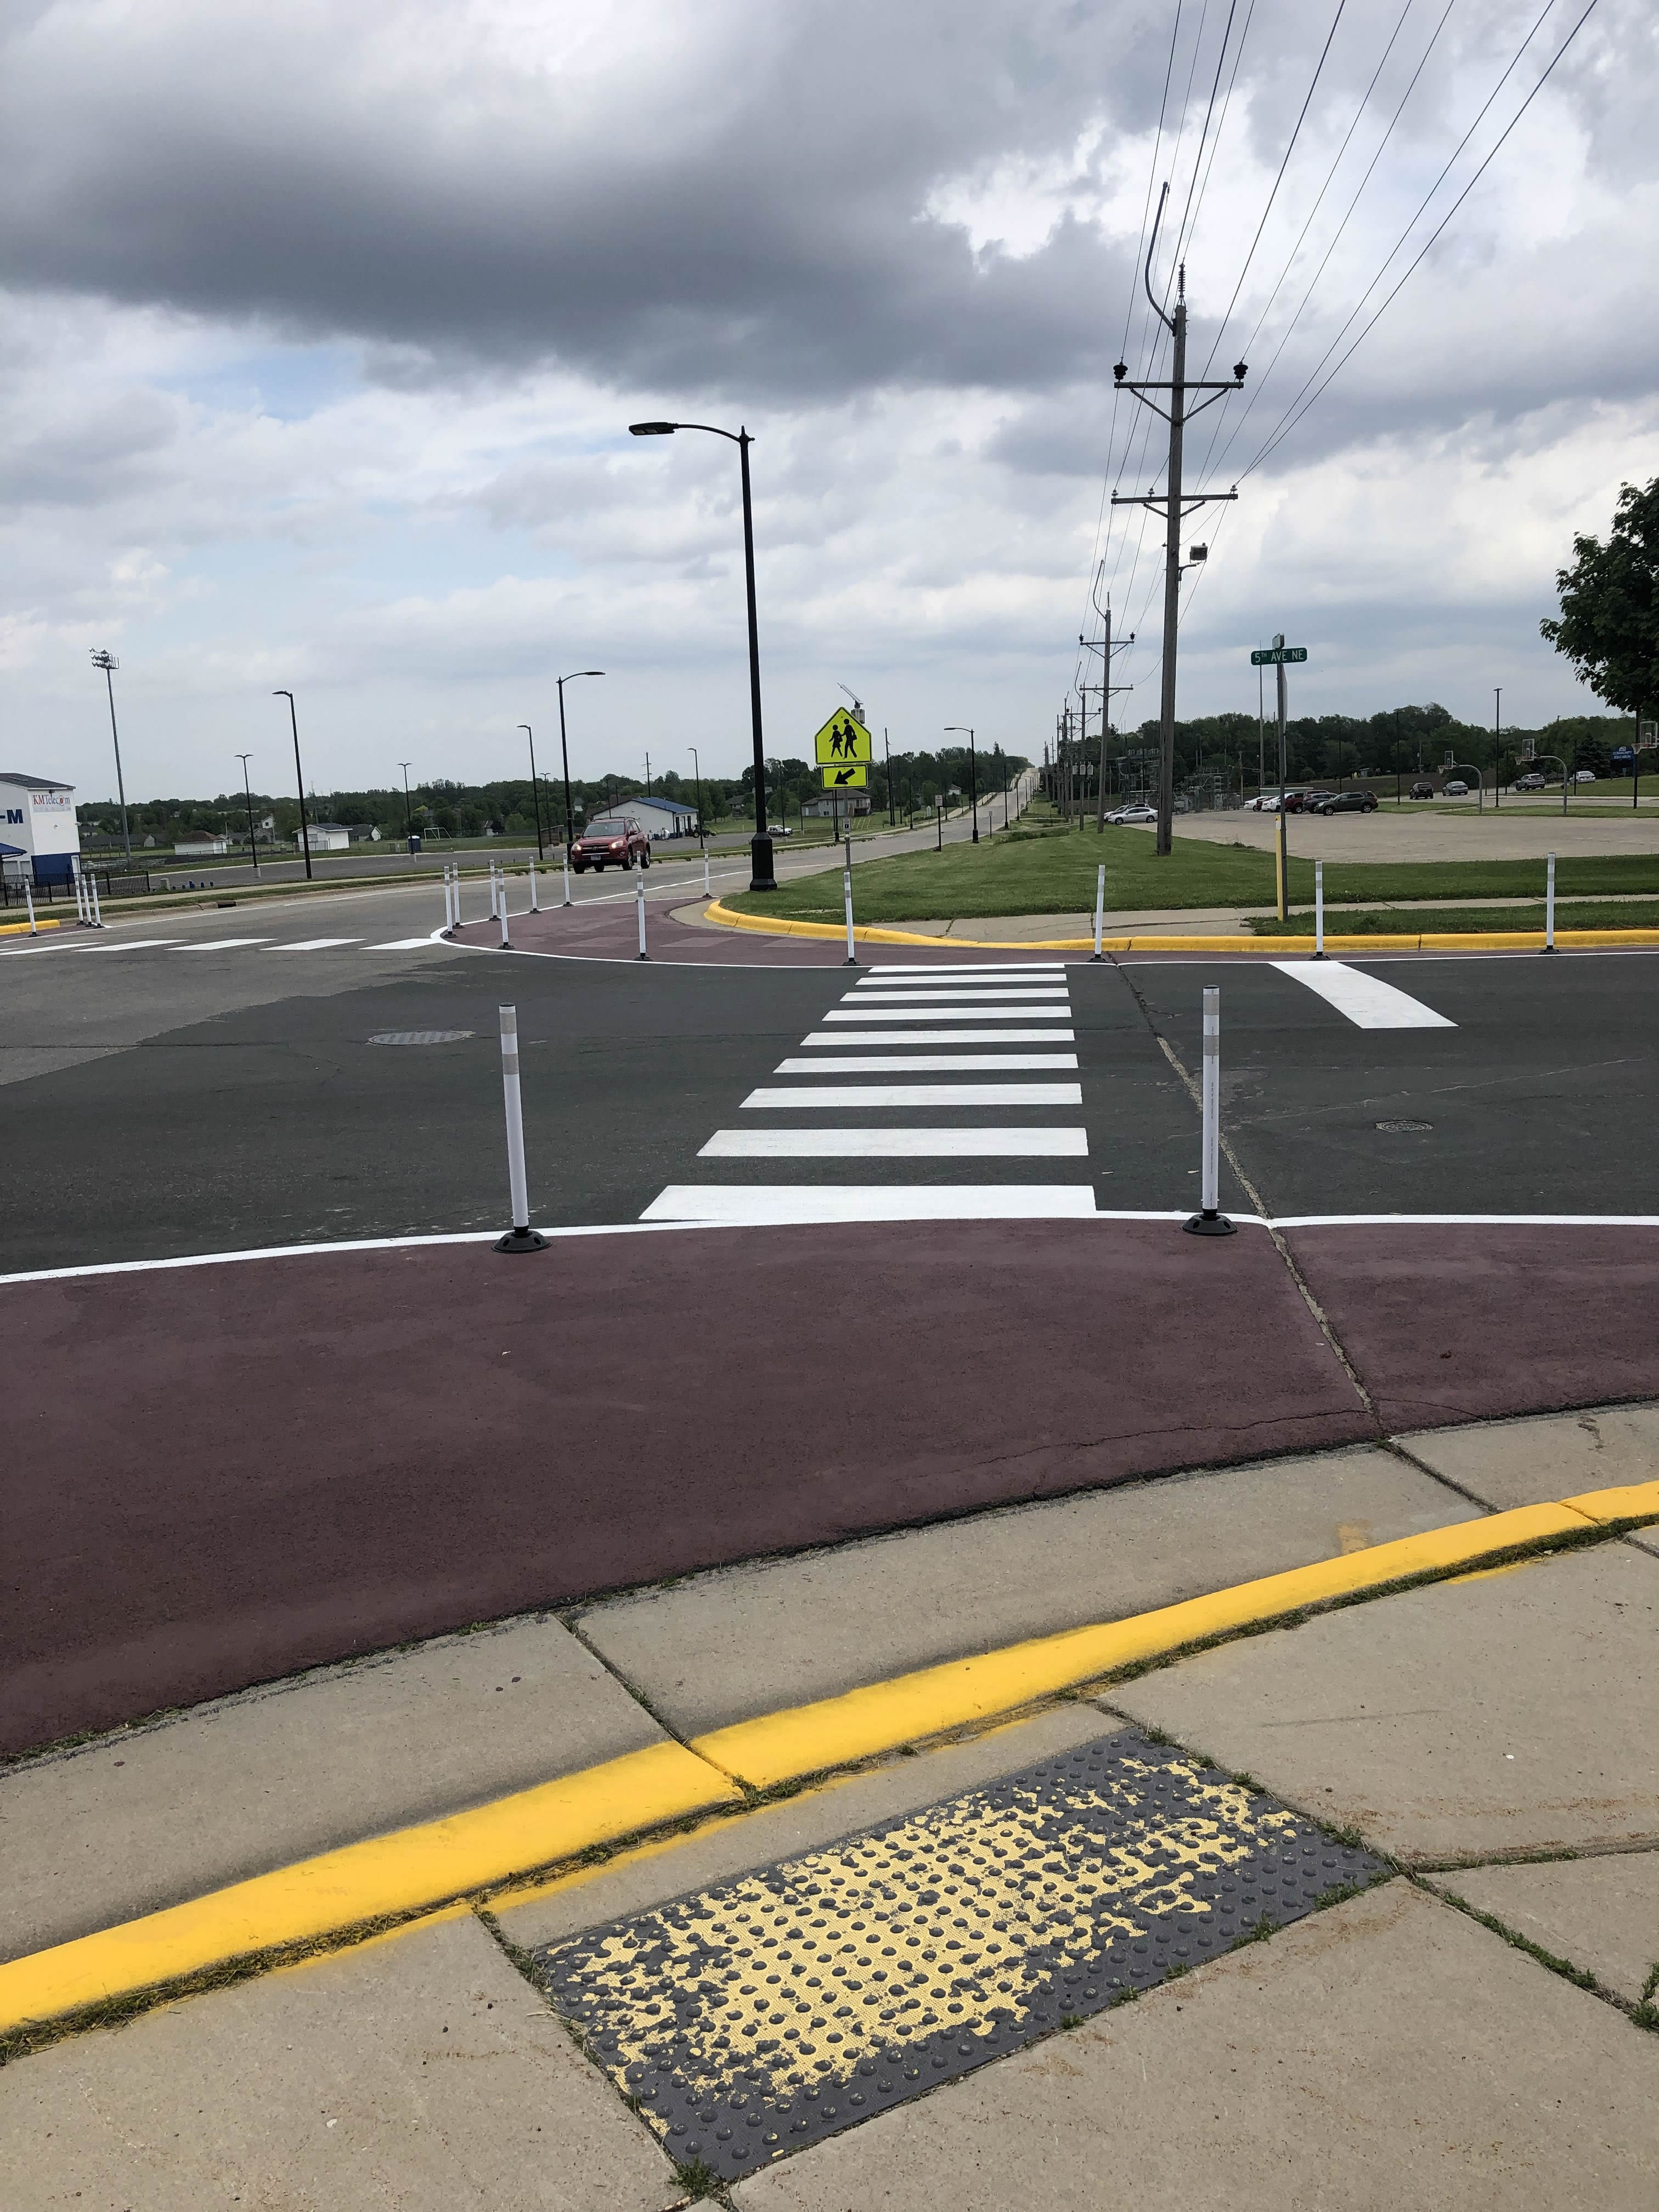 A finished demonstration project, including painted curb extensions, white flexible posts, and a freshly painted high-visibility white crosswalk.